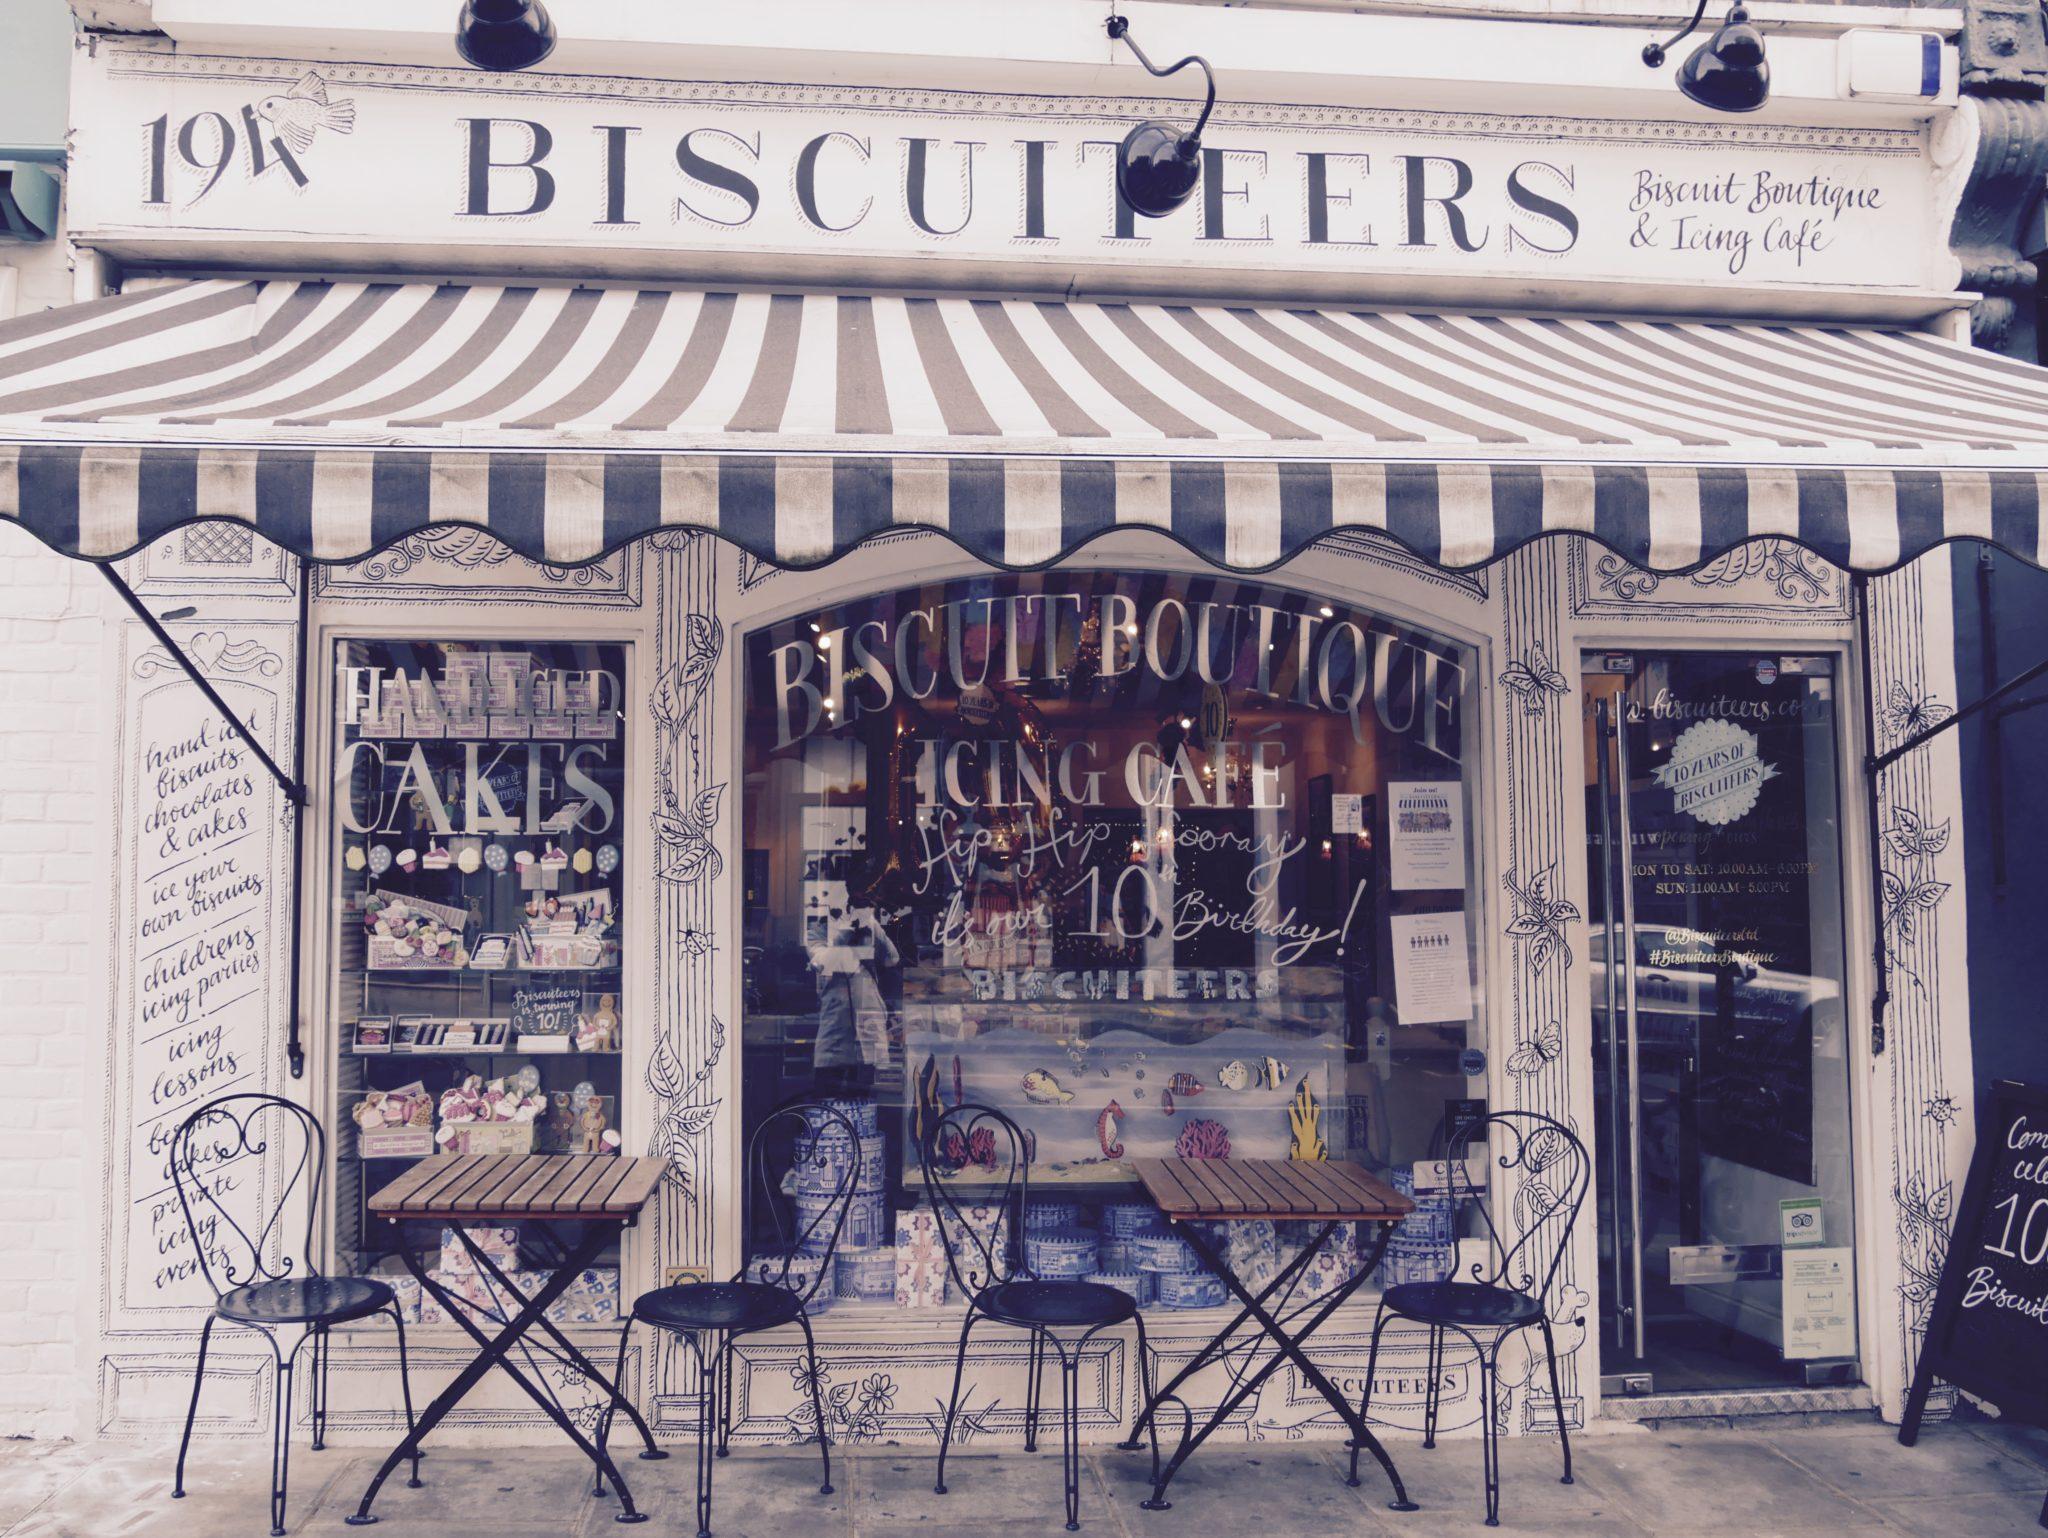 Boutique biscuiters